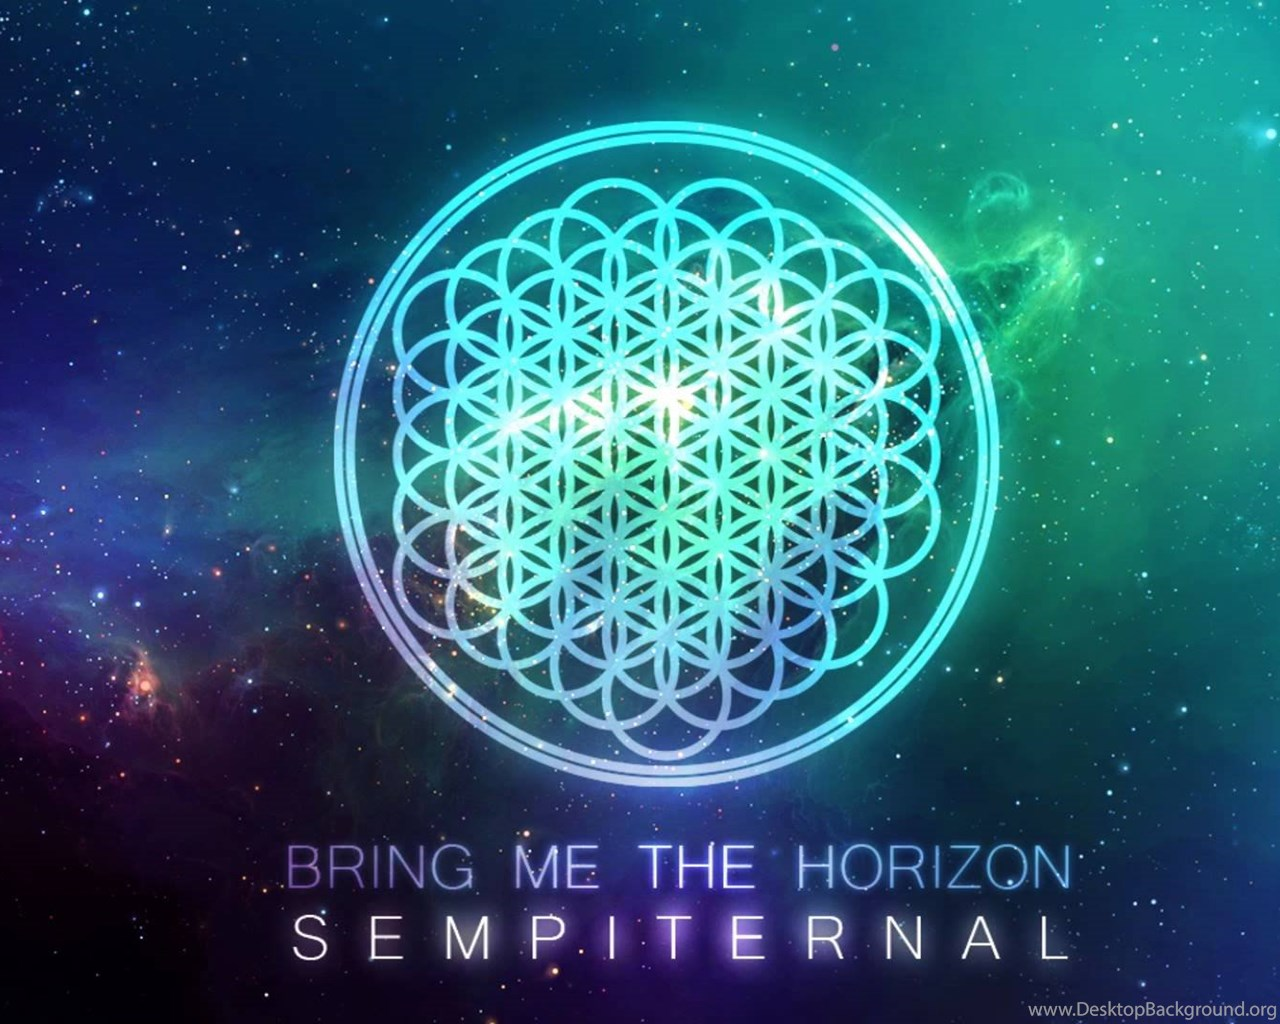 Bring Me The Horizon The Bedroom Sessions Album Wallpaper Desktop